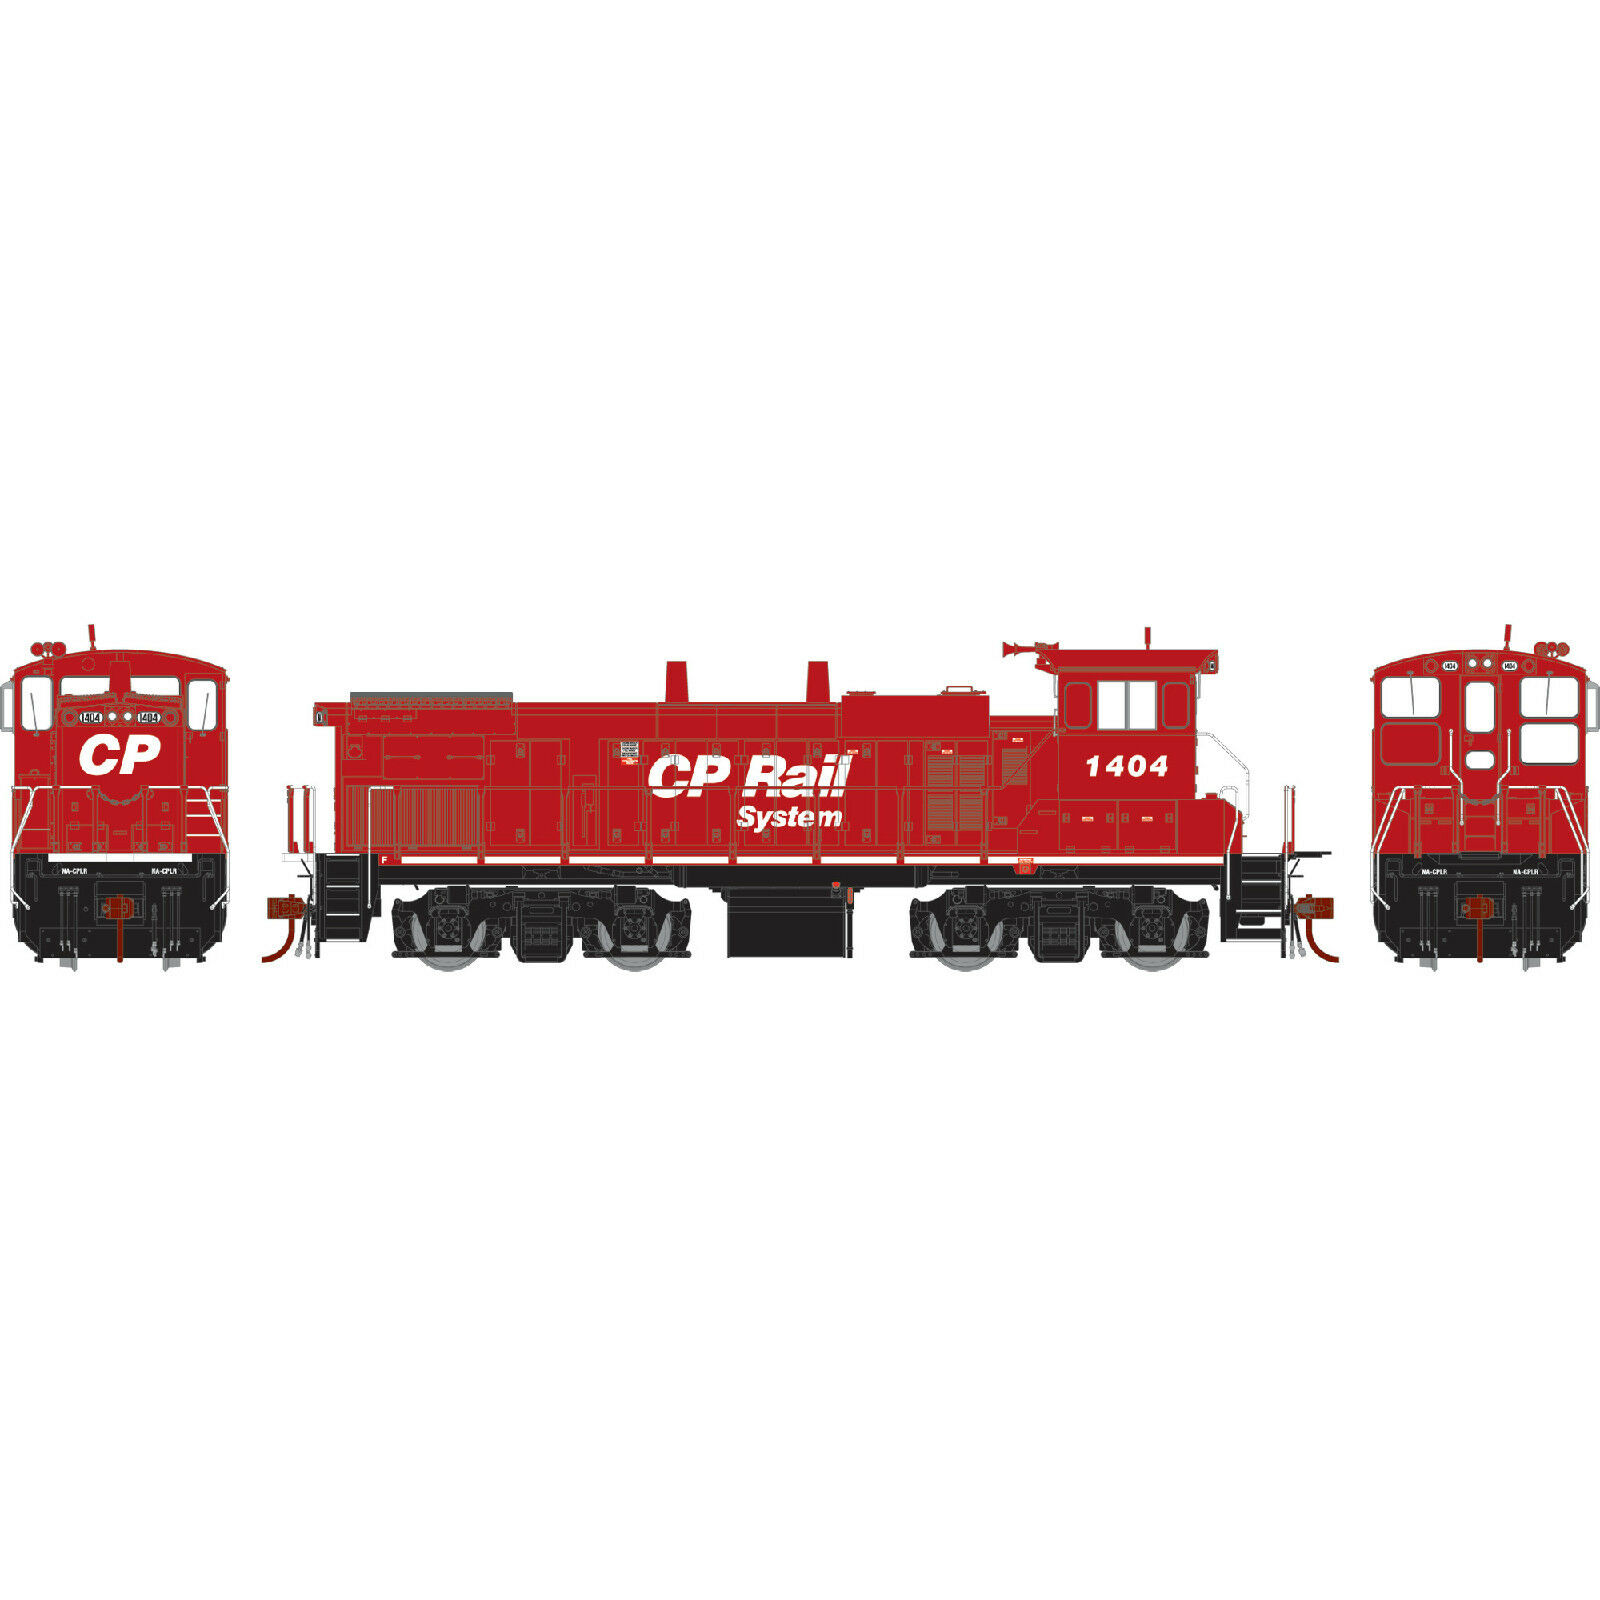 GENESIS CANADIAN PACIFIC Road  1404 MP15AC Item  ATHG66131 HO Scale